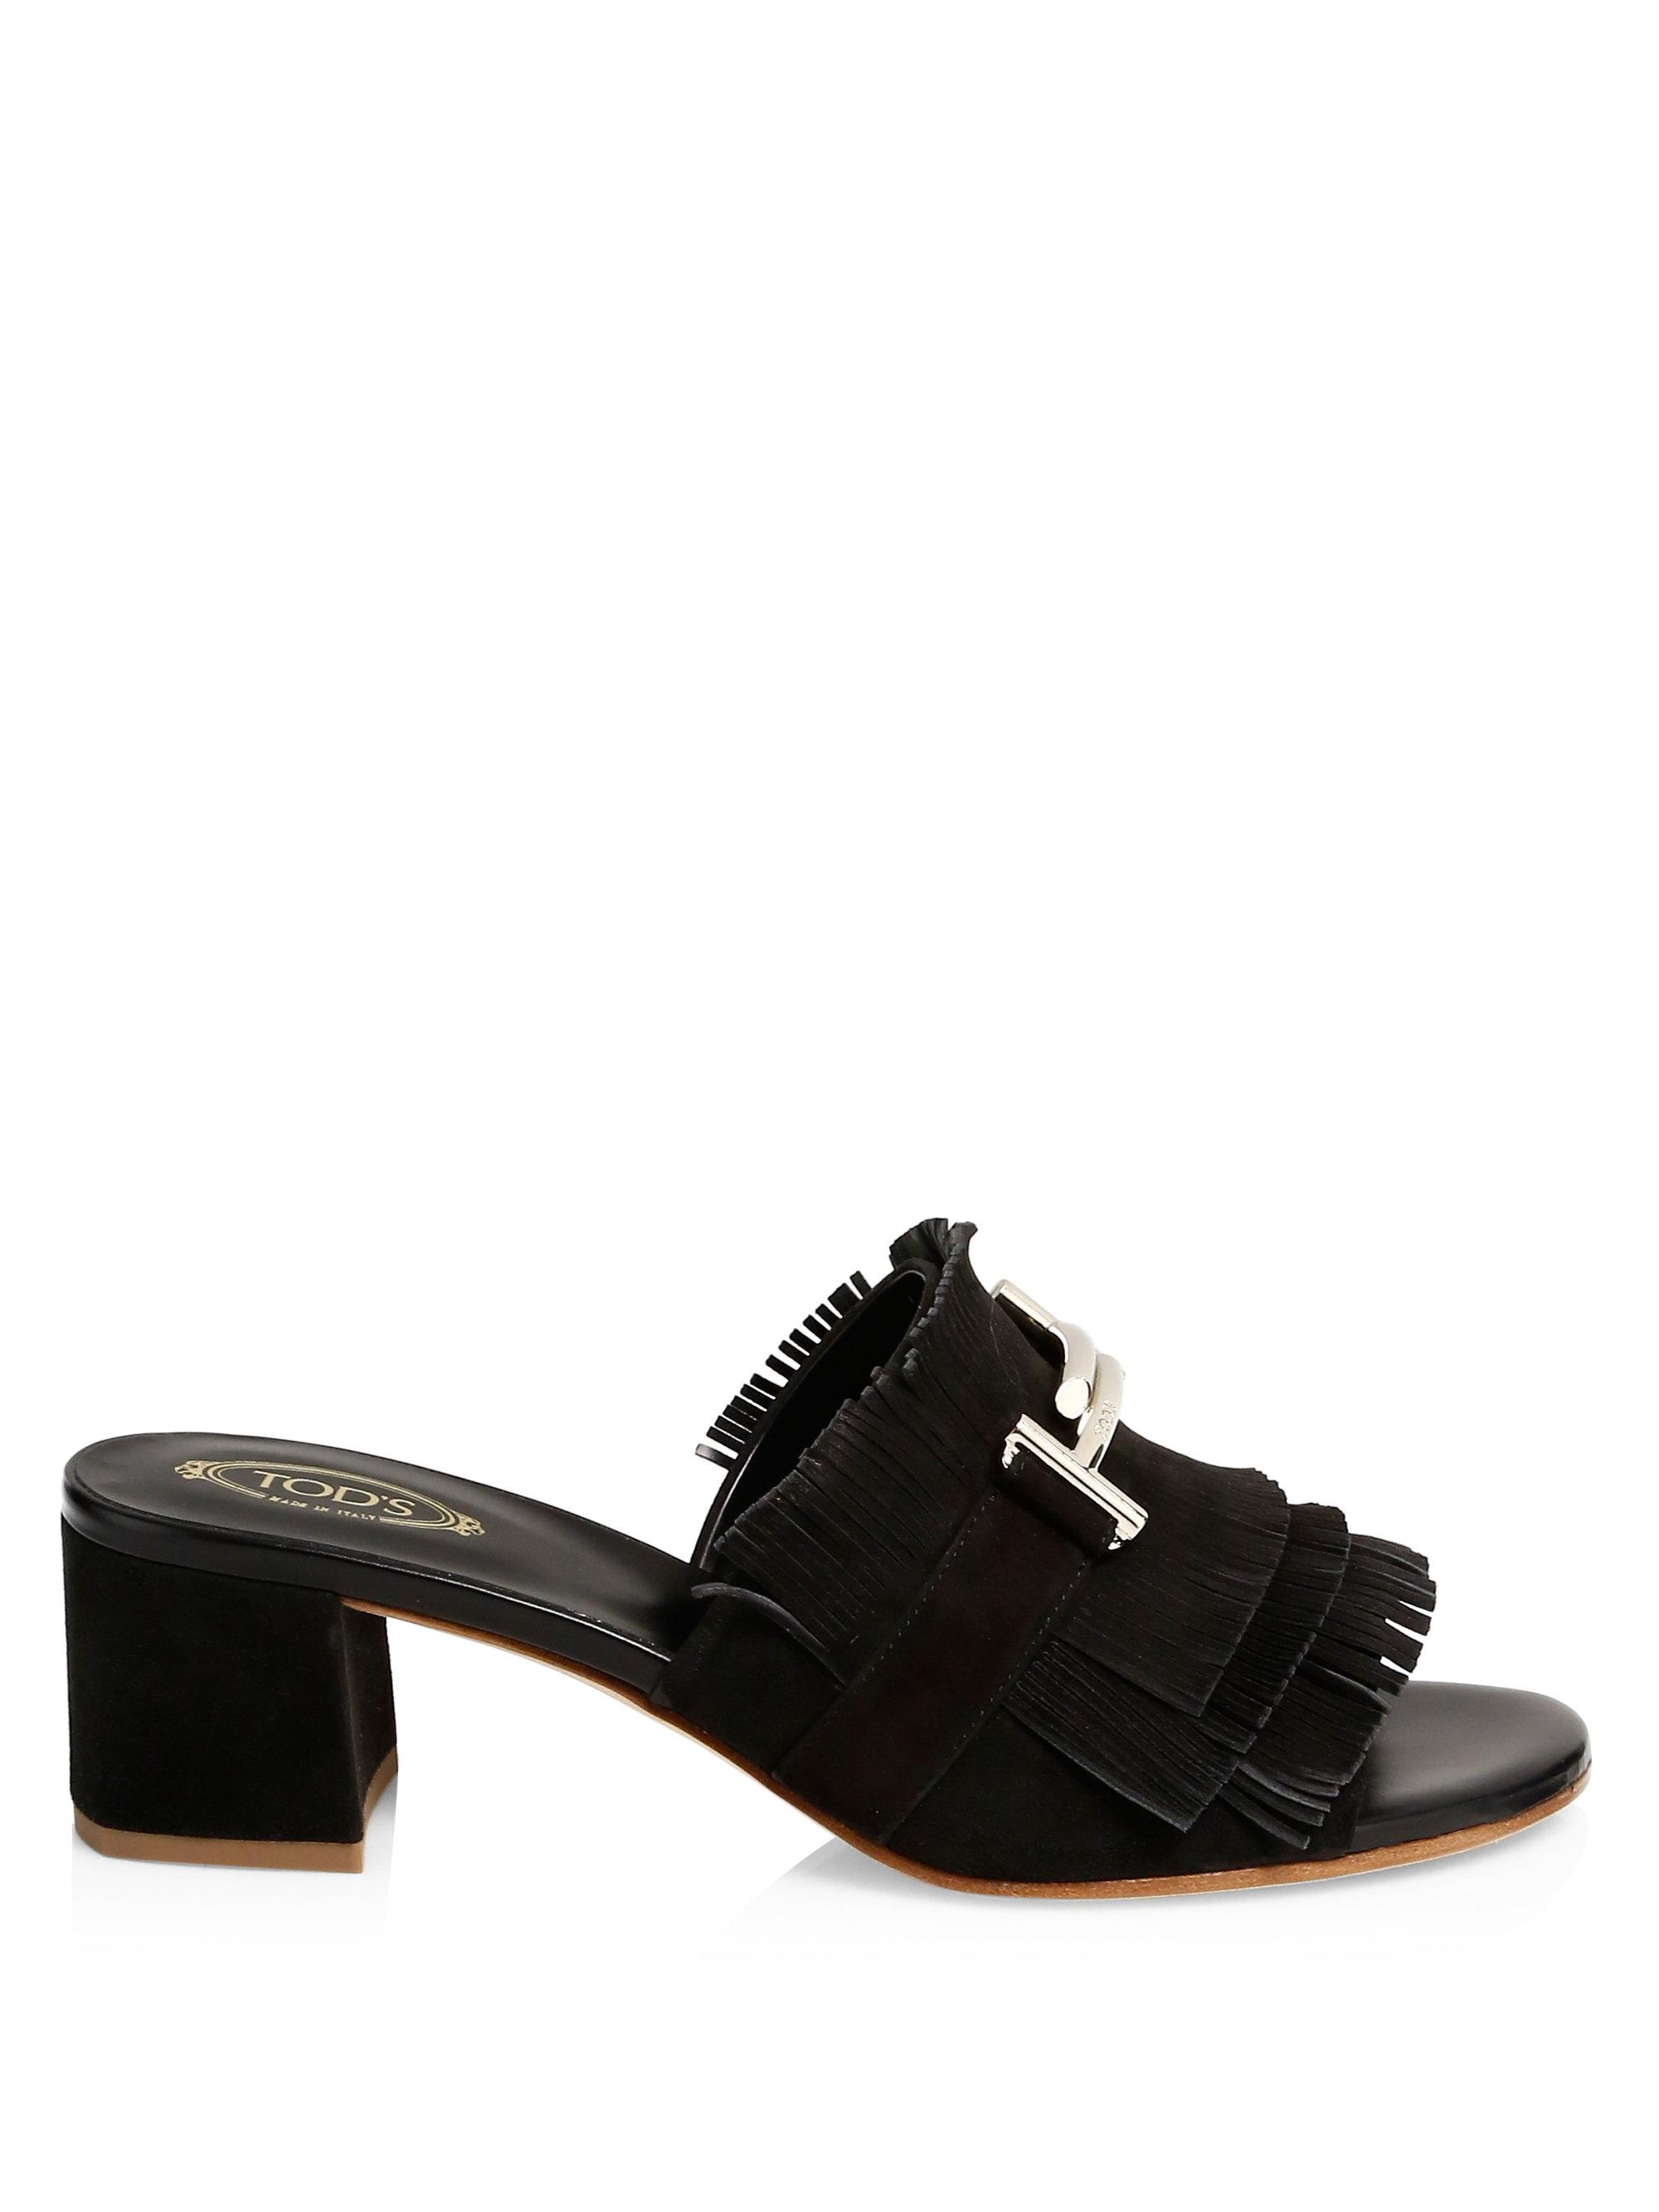 Fringed T-bar leather slides Tod's Cheap Sale With Paypal Clearance Comfortable Sale High Quality Clearance Store Sale Online Under Sale Online rFM9d